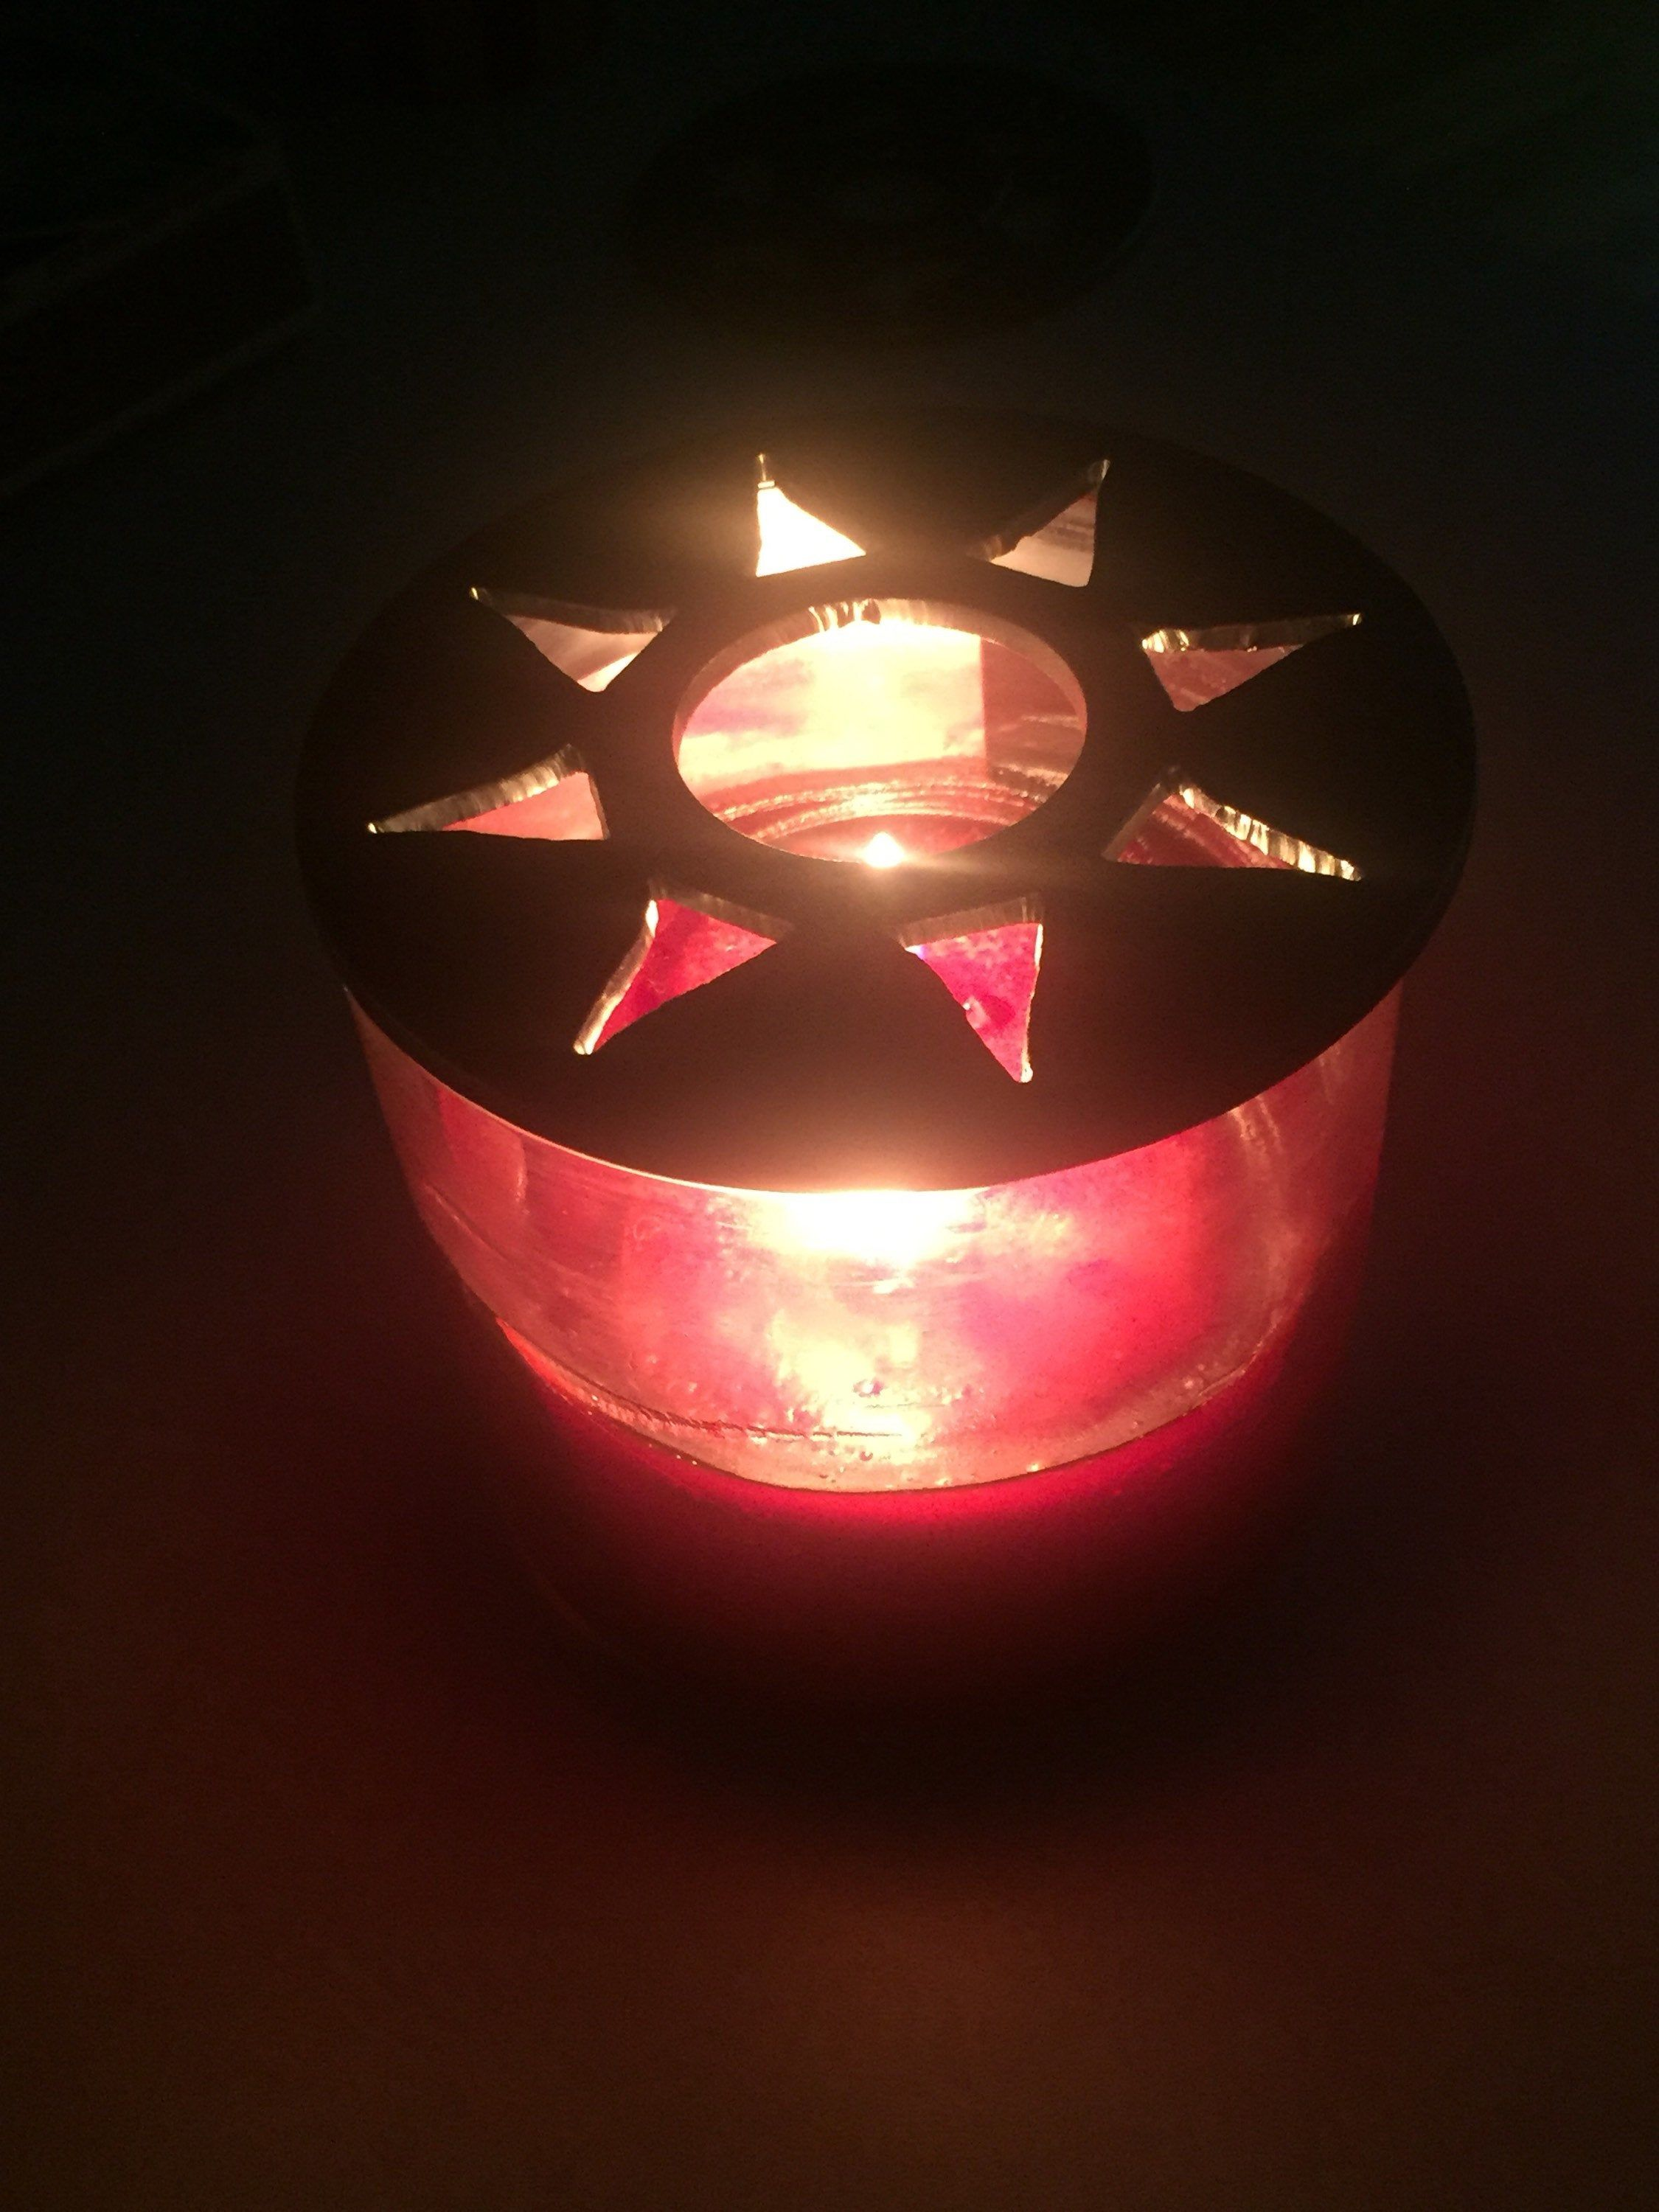 Help Melt your Candle Evenly! AND Looks Great Moon and